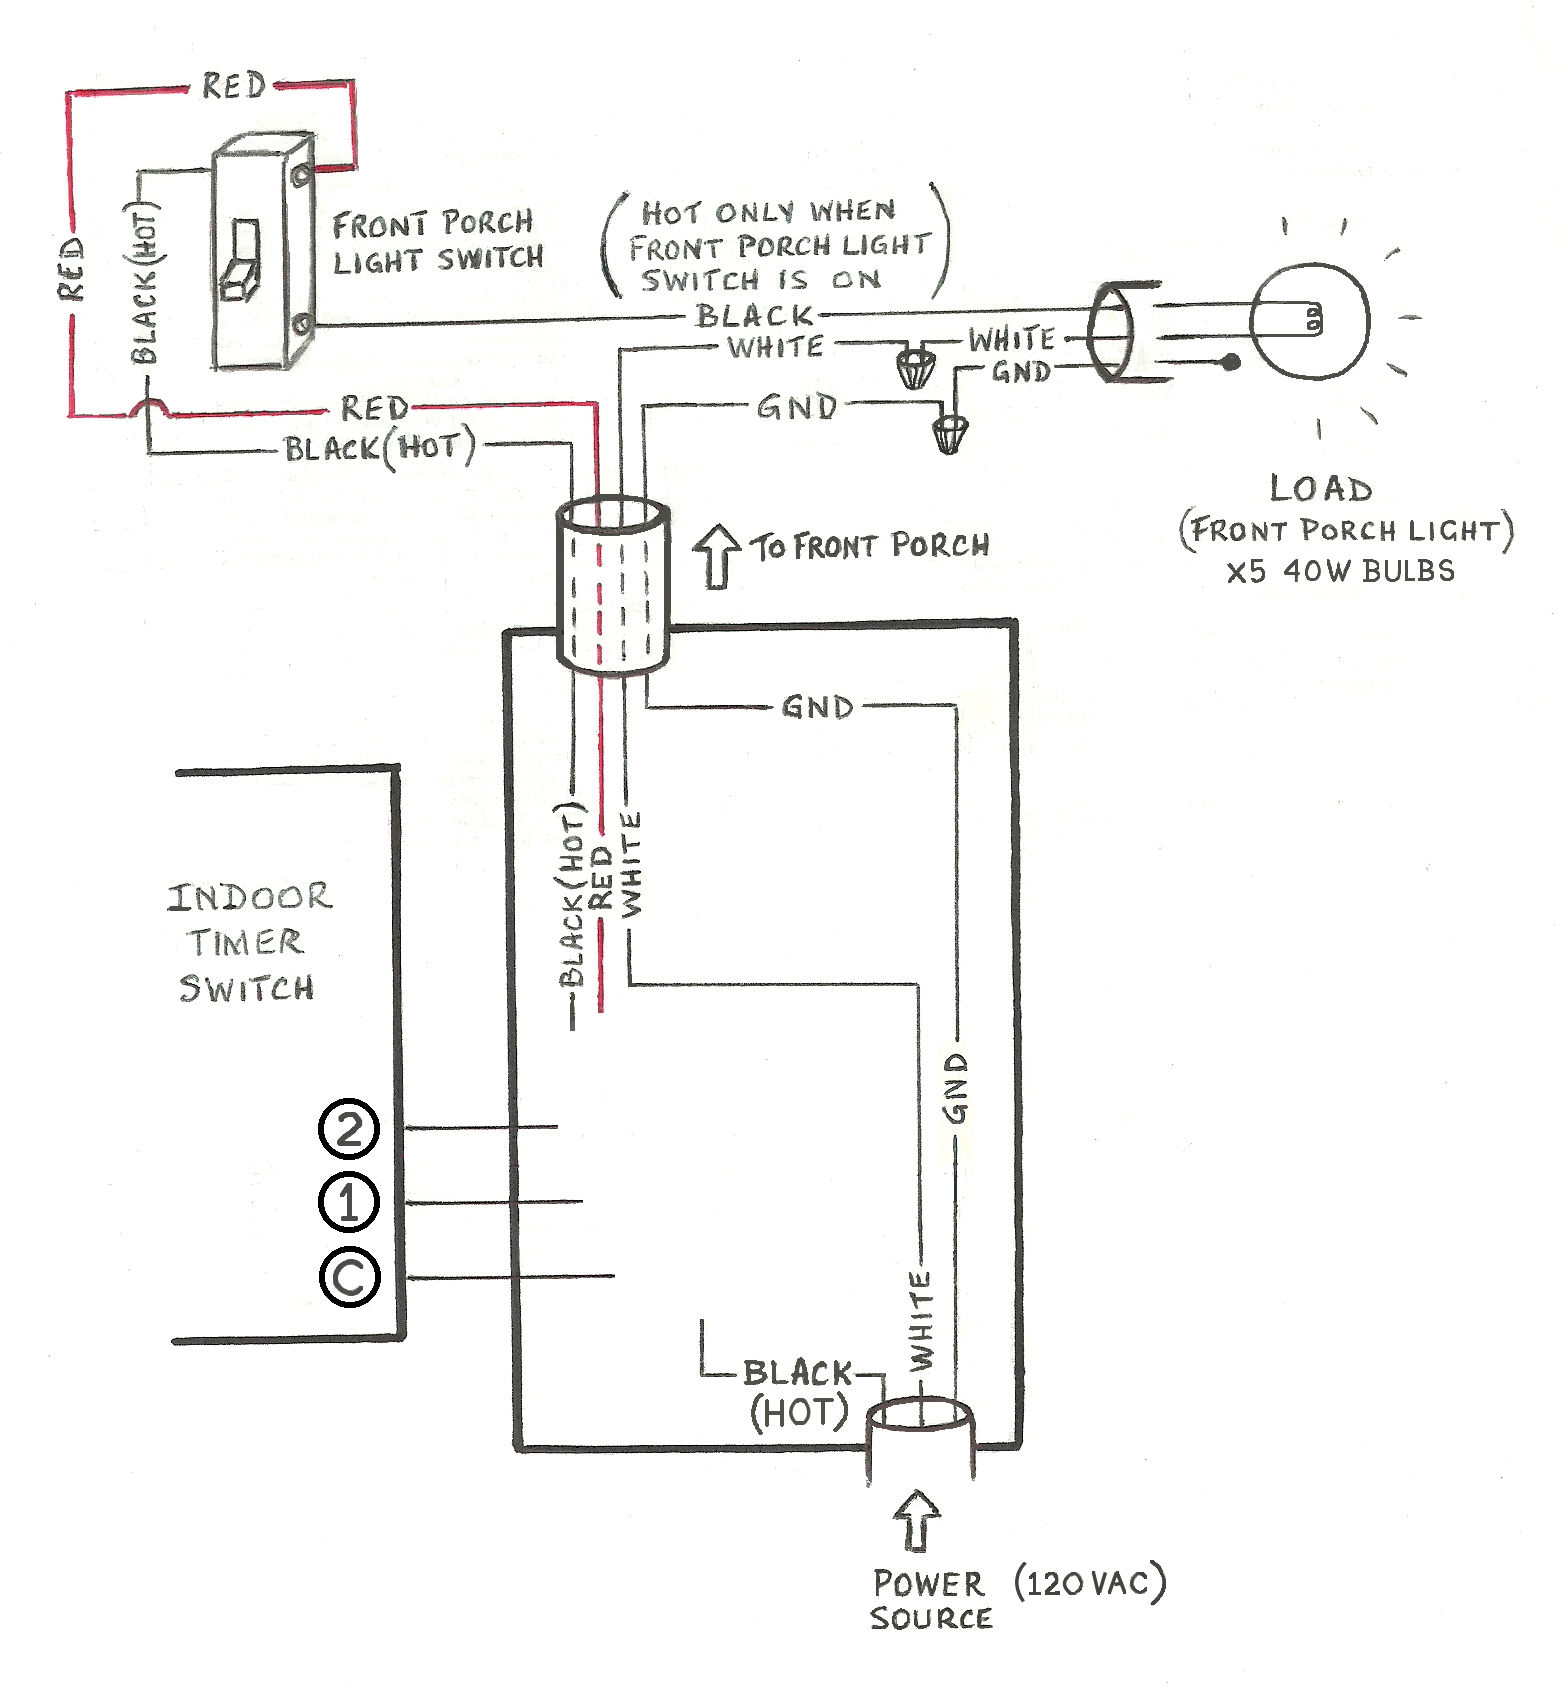 hight resolution of need help wiring a 3 way honeywell digital timer switch home electrical wiring 3 way switch timer